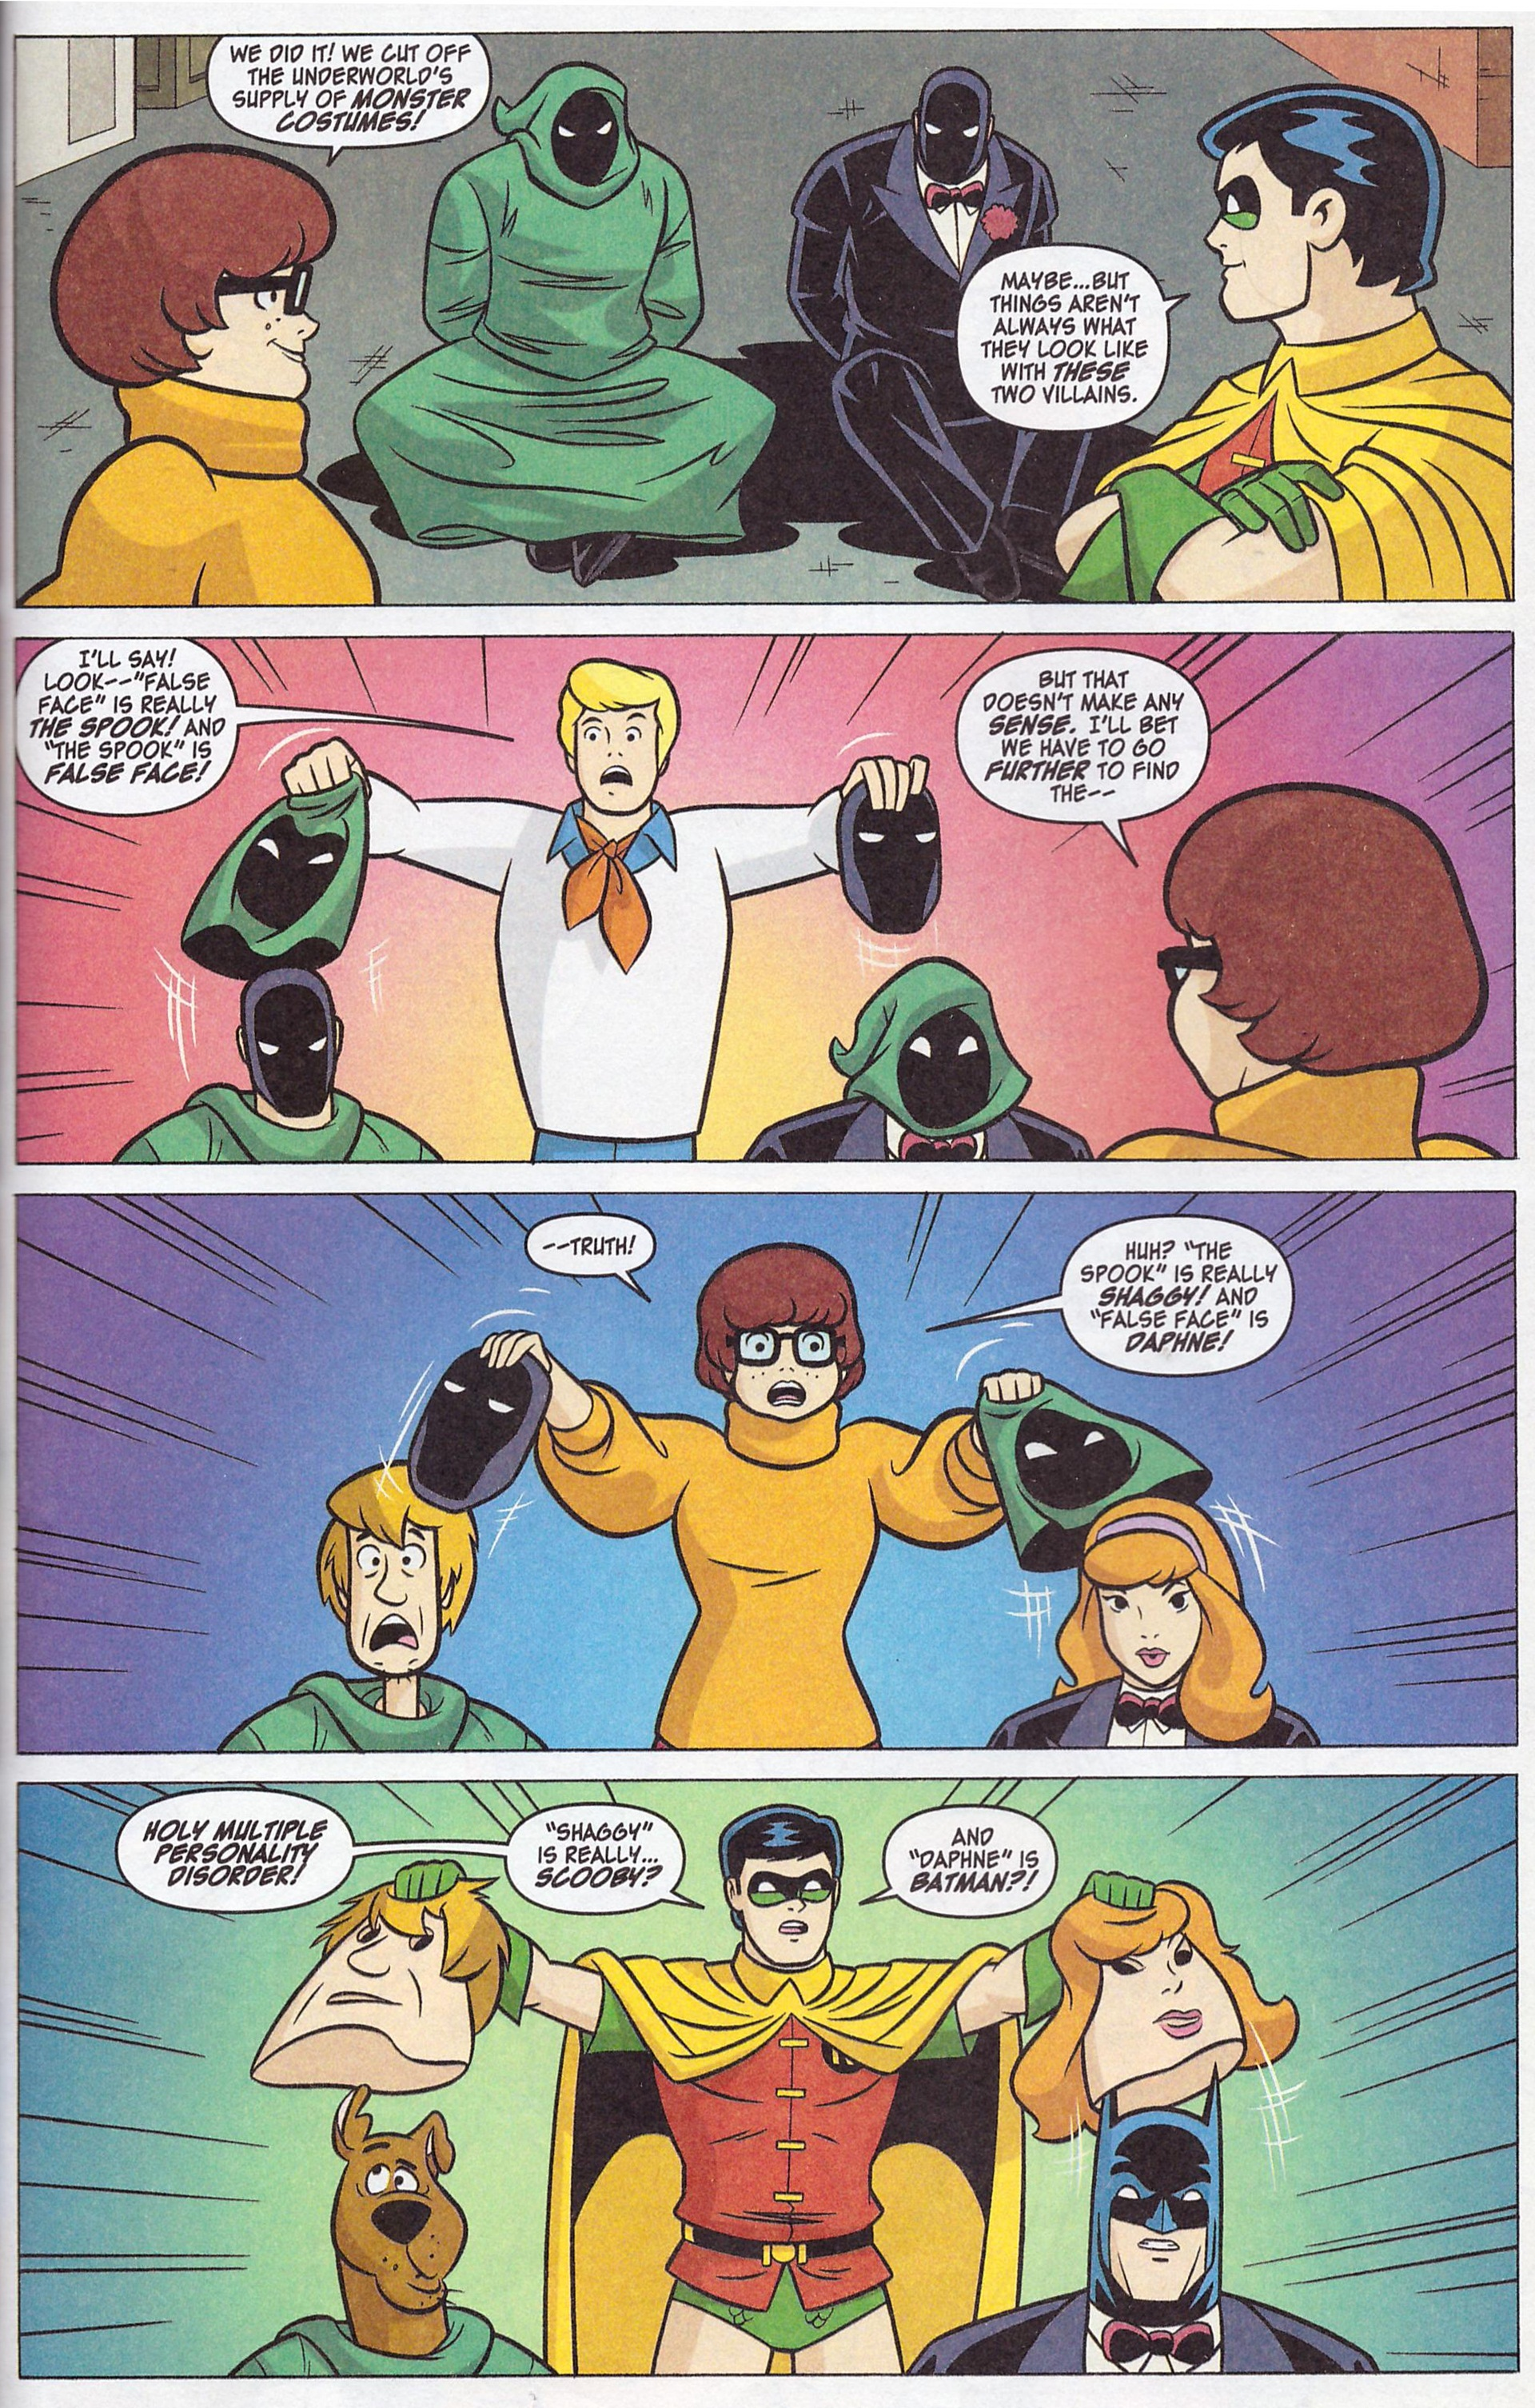 Scooby-Doo Team-Up vol 1 review